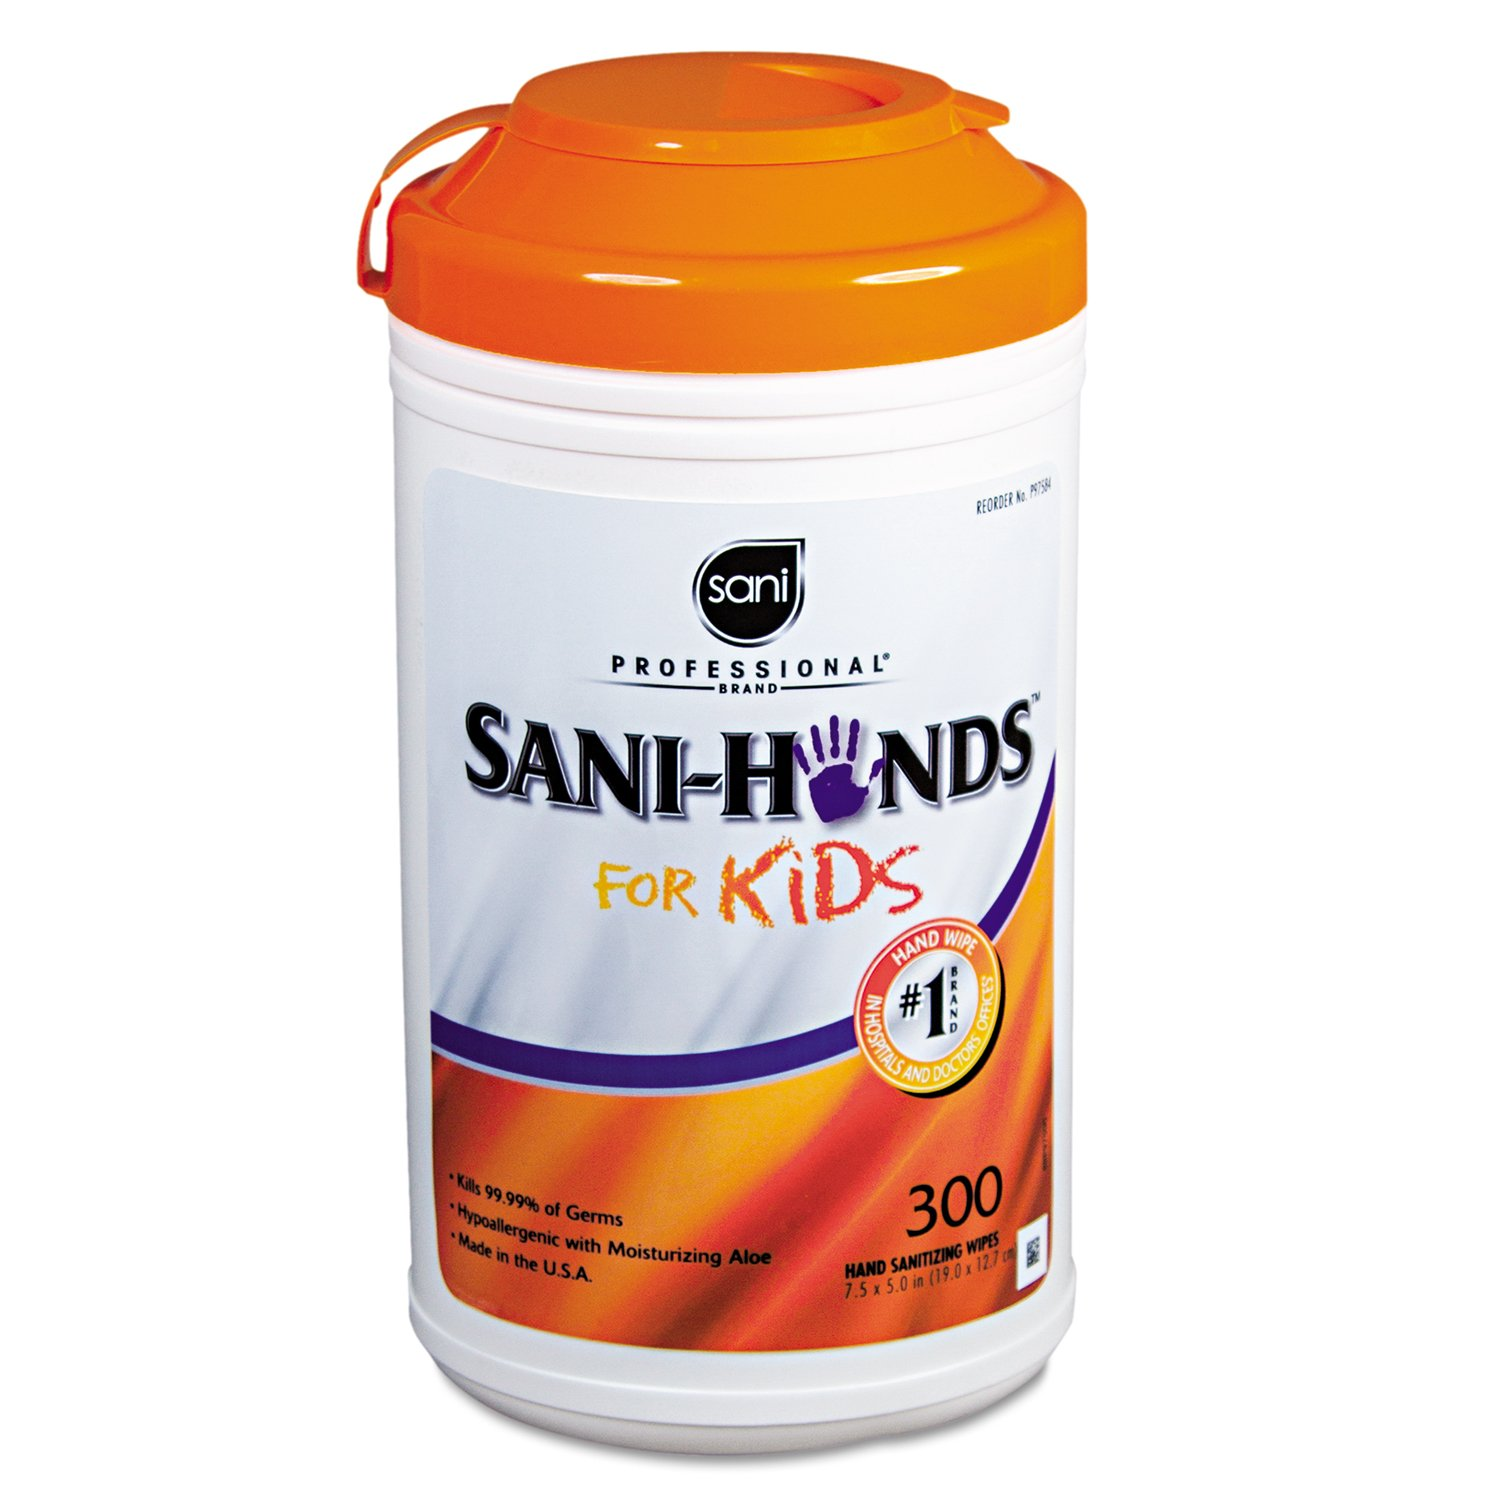 Sani Professional P97584 Hands Instant Sanitizing Wipes for Kids, 5 x 7 1/2, White, 300 per Pack (Case of 6)